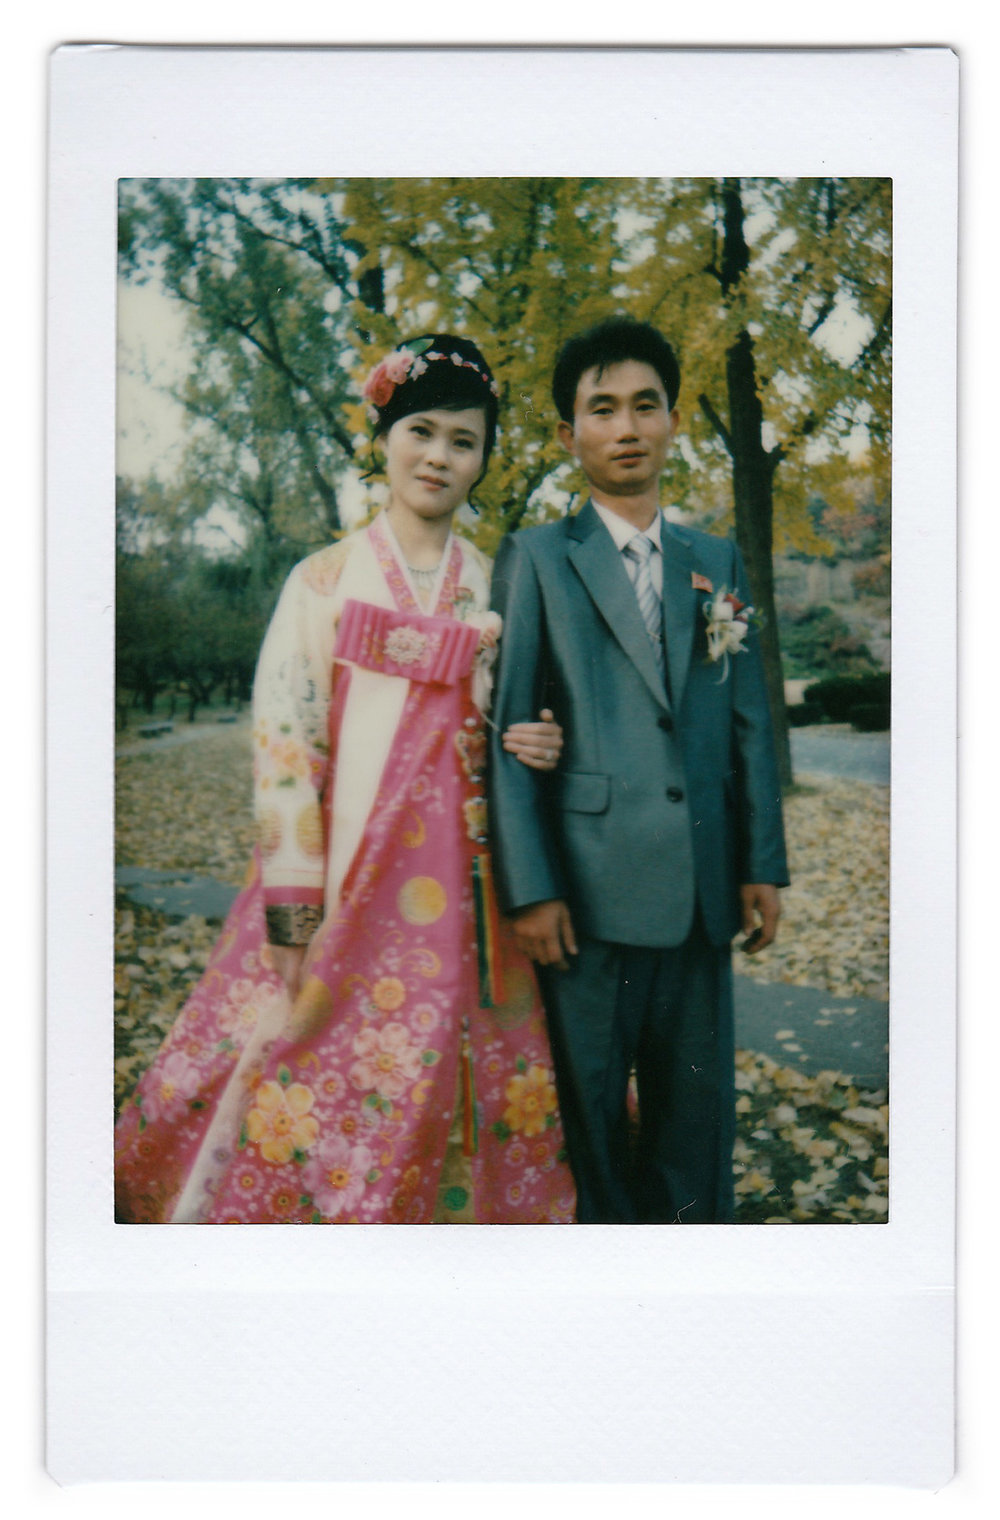 In this Oct. 25, 2014, photo made with an instant camera, North Korean bride Ri Ok Ran, 28, and groom Kang Sung Jin, 32, pose for a portrait at the Moran Hill where they went to take wedding pictures, in Pyongyang, North Korea. The couple were married after dating for about two years. (AP Photo/Wong Maye-E)